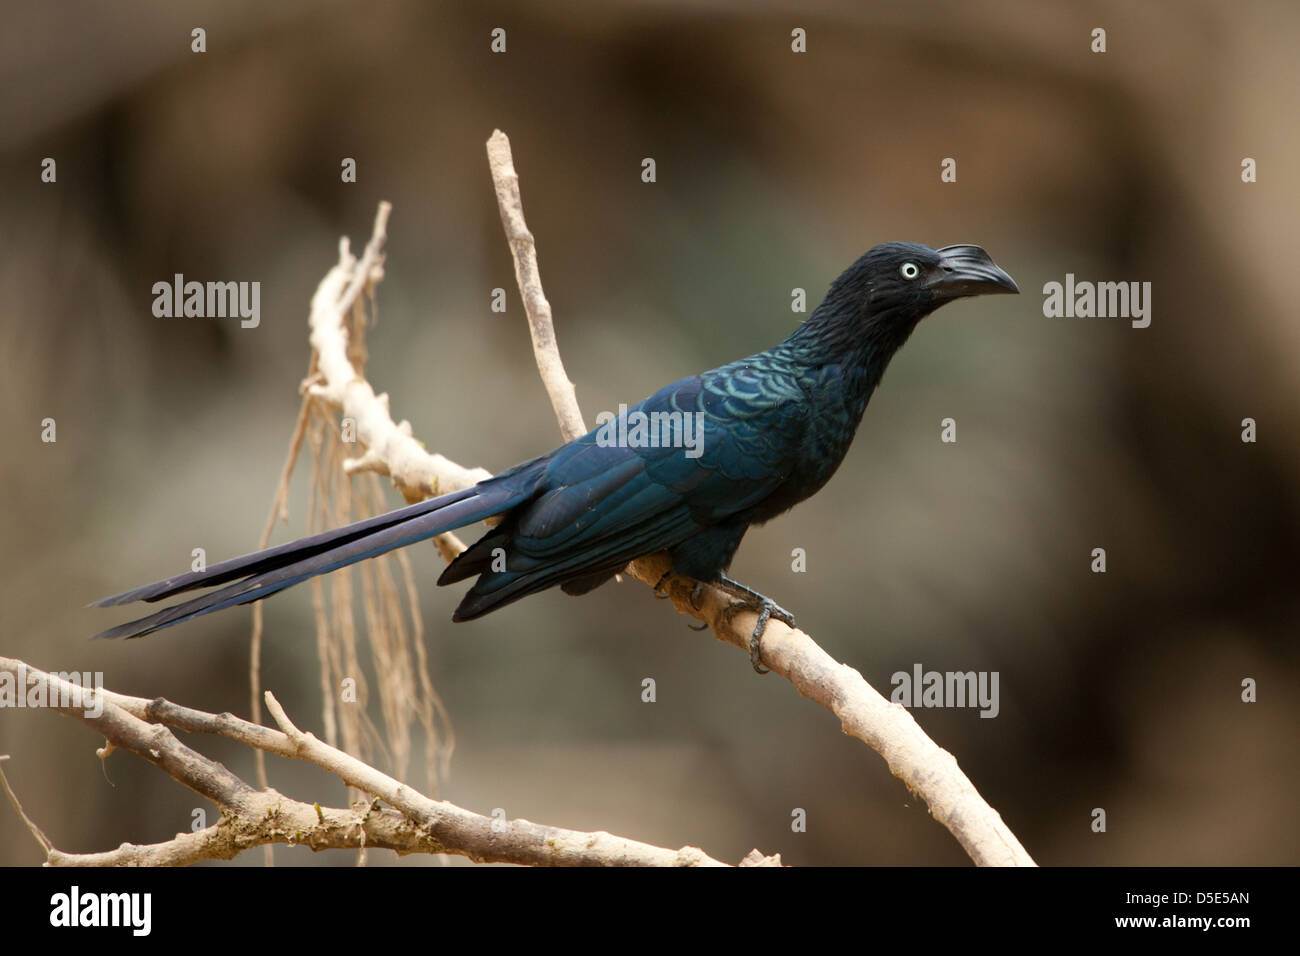 A Smooth-Billed Ani sitting in a branch (Crotophaga ani) - Stock Image